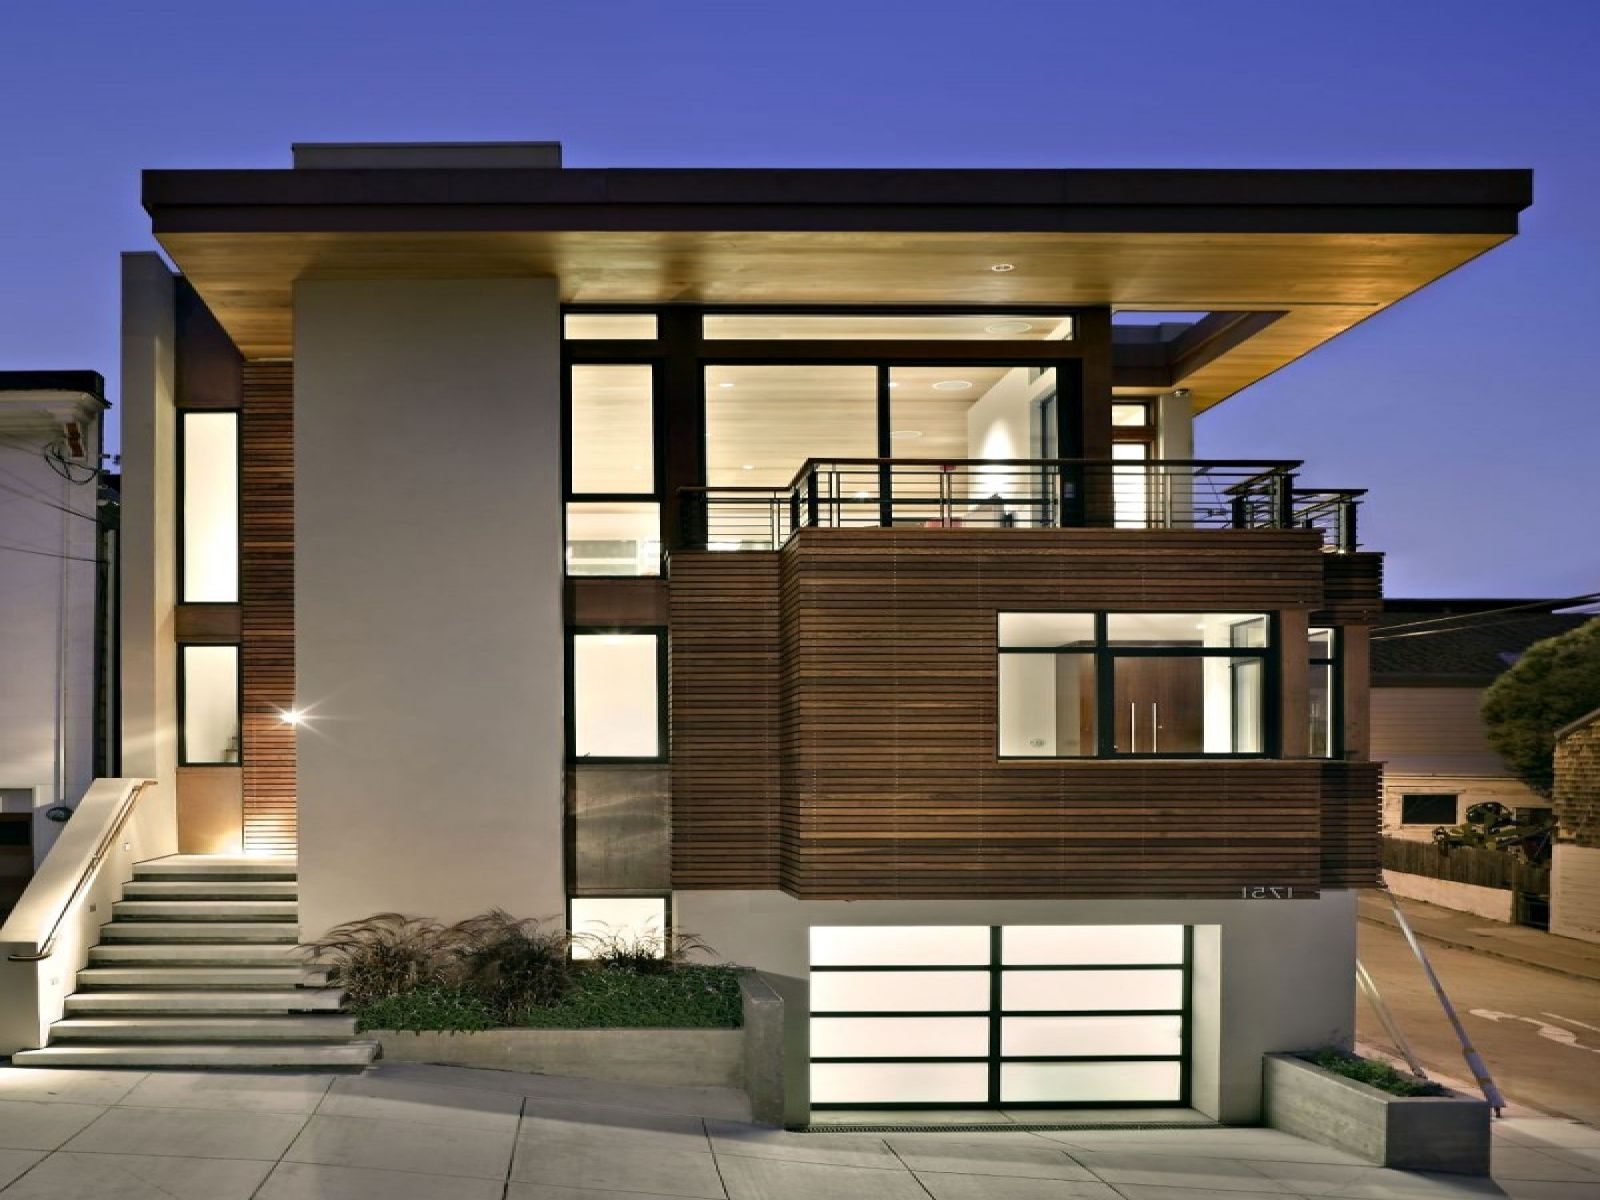 Minimalist House Exterior: Modern Minimalist House. Beautiful Exterior Design For